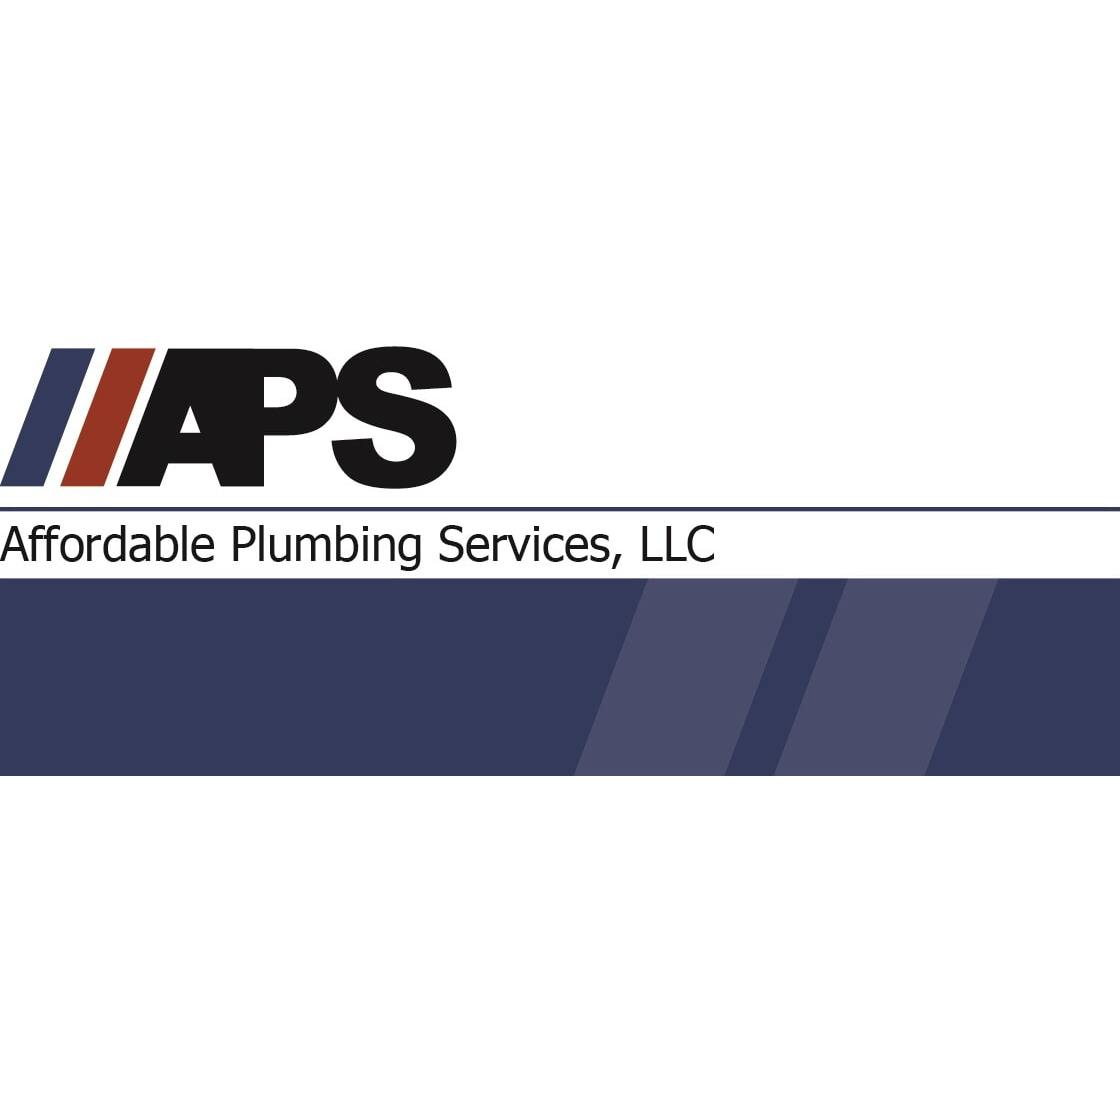 Affordable Plumbing Services, LLC